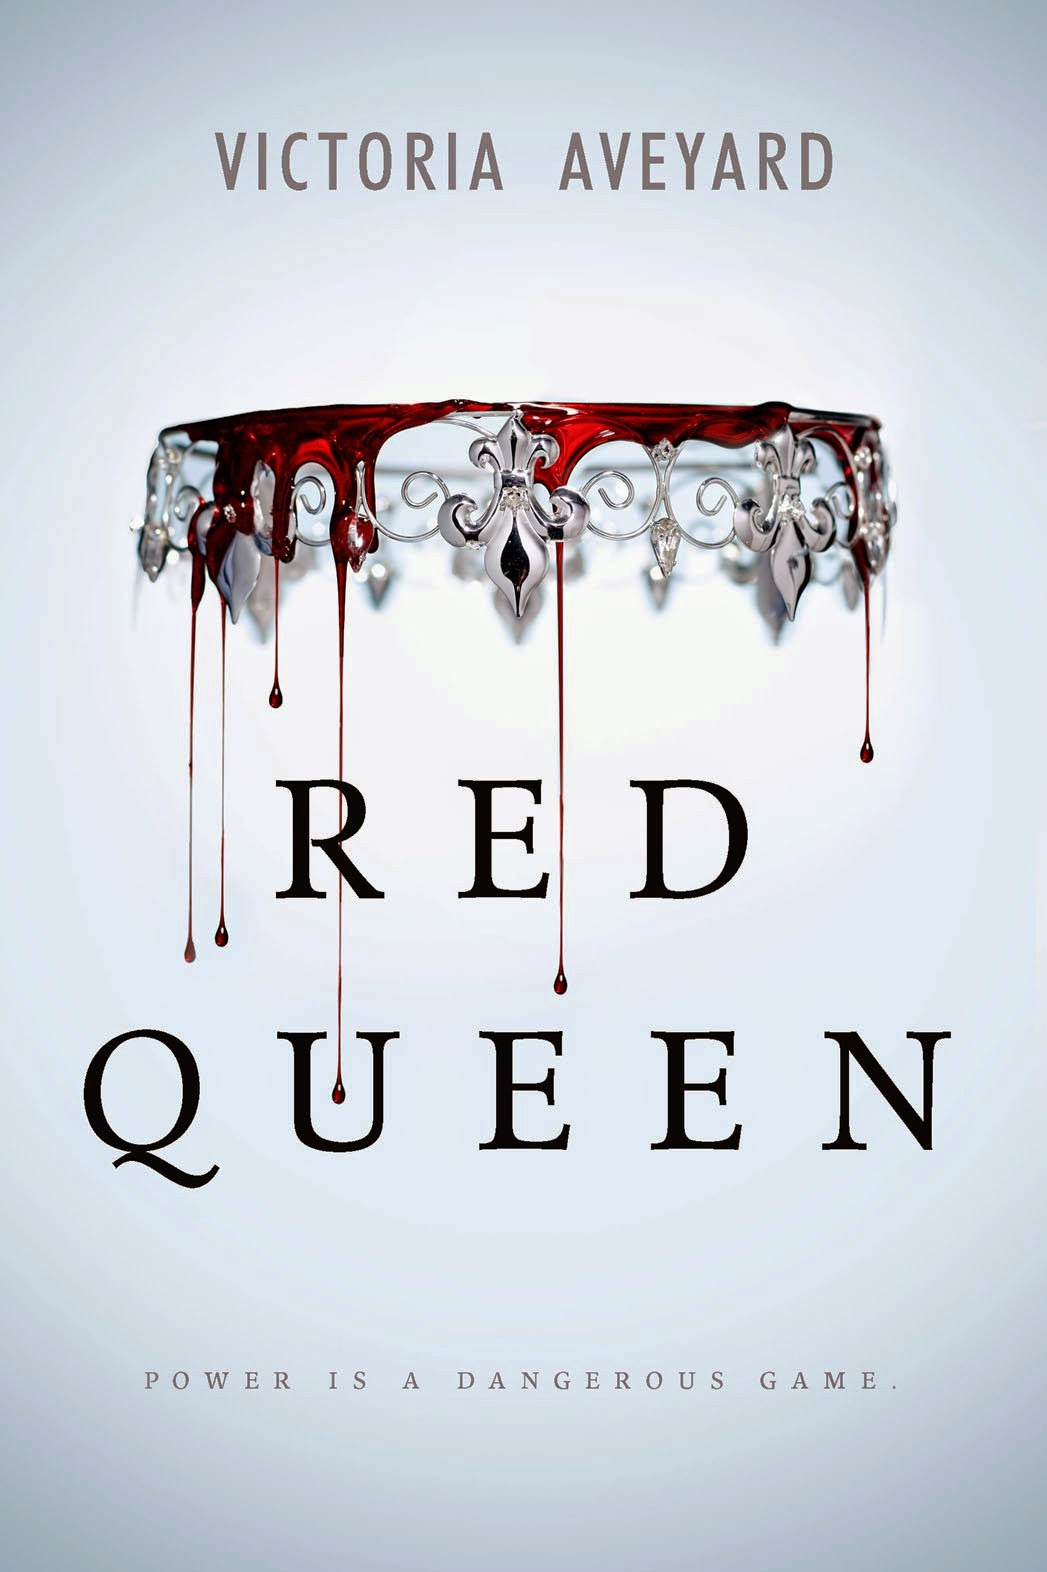 Reseña: Red Queen (Victoria Aveyard)